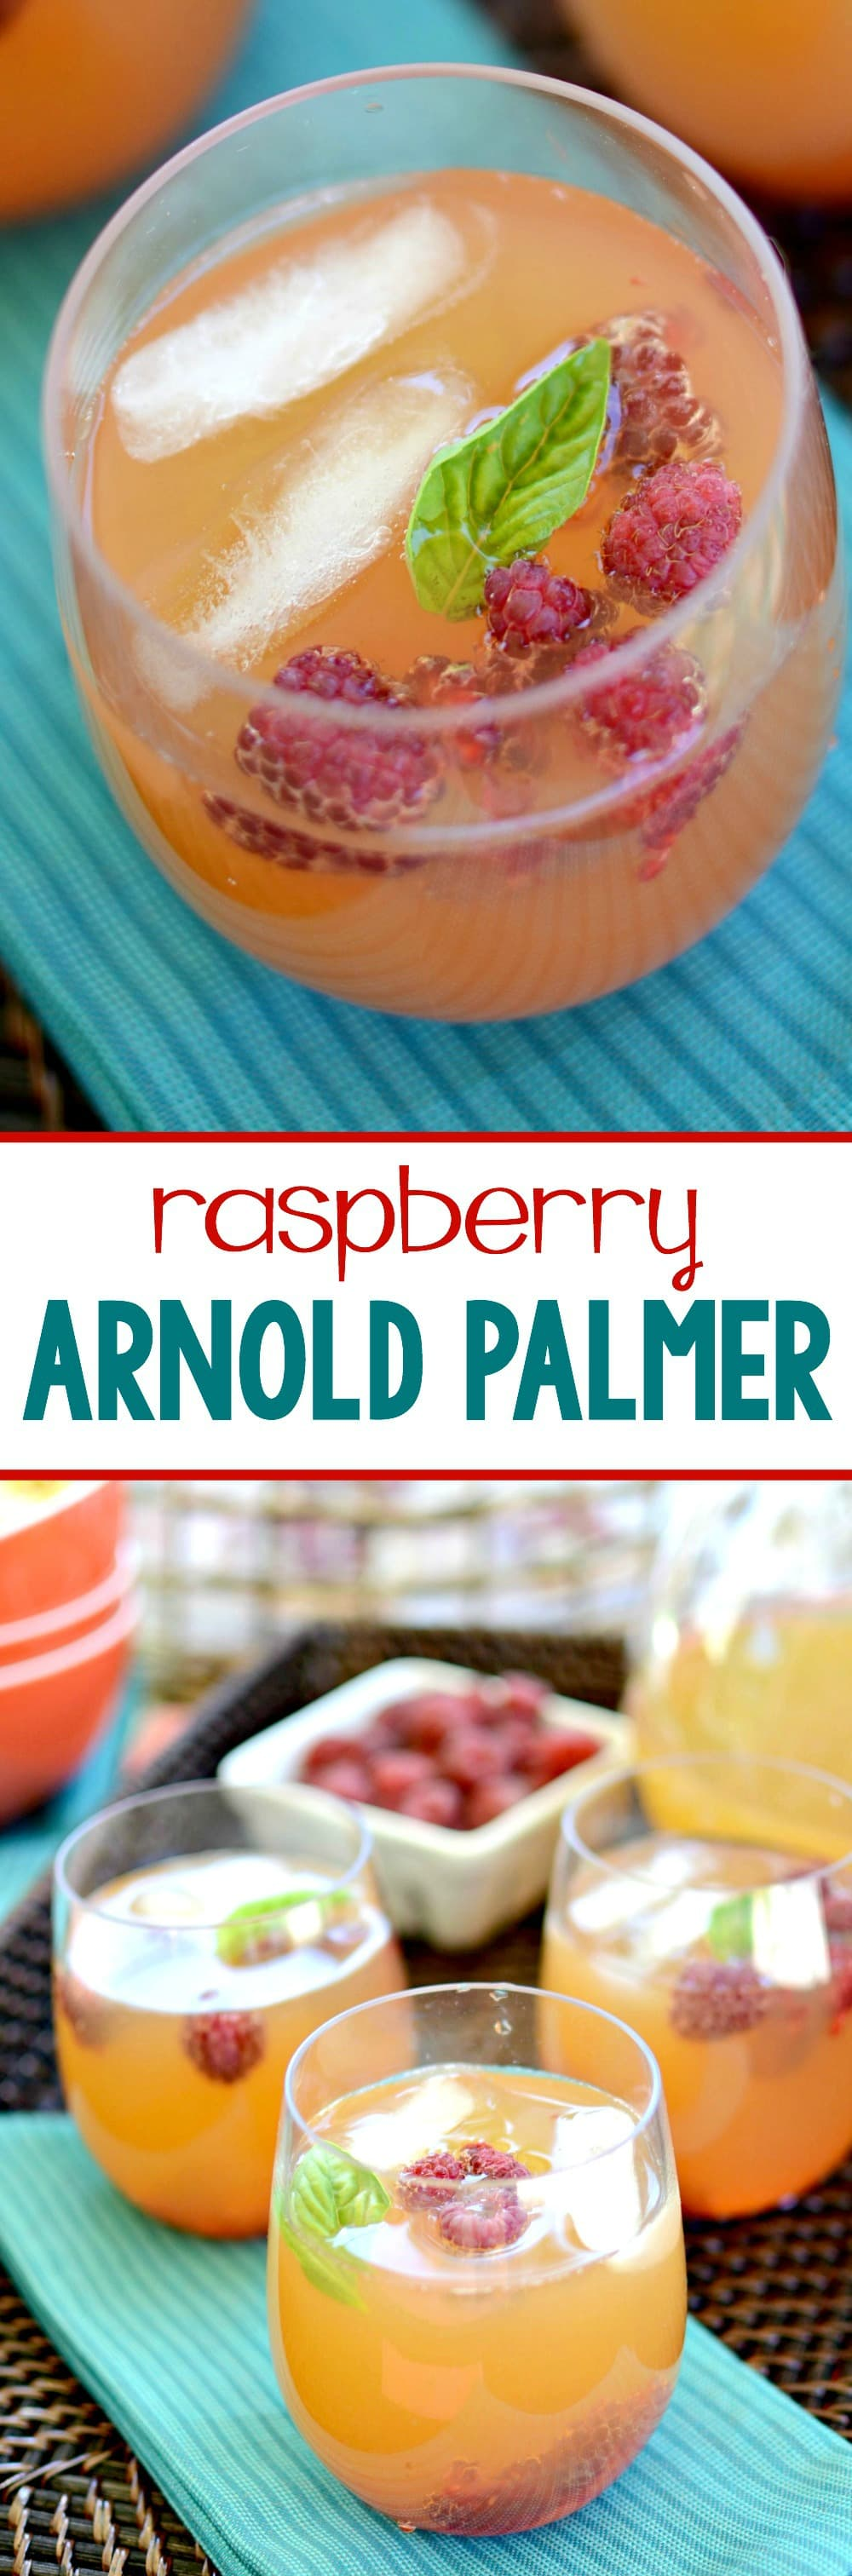 Raspberry Arnold Palmer - this easy drink recipe starts with fresh brewed iced tea with an infusion of raspberries! You can also jazz it up for the adults by adding vodka or wine!